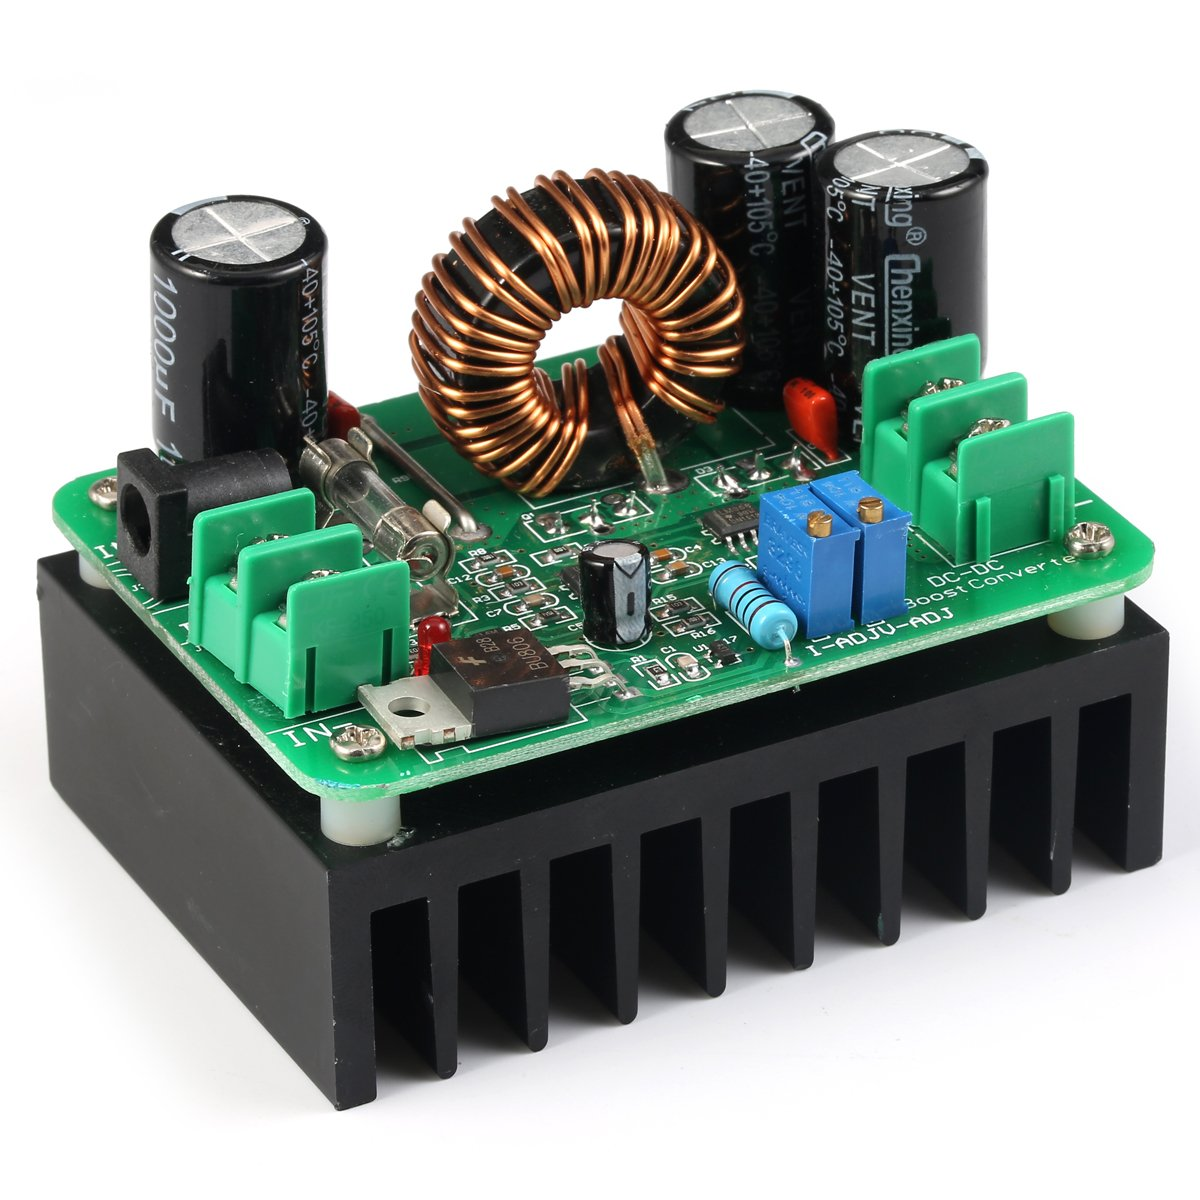 Geree Dc Boost Converter 10 60v To 12 80v Step Up Simple Automobile Voltage Regulator When Batteru Drops Below 600w Auto Power Supply Transformer Adjustable Output Volt Controller